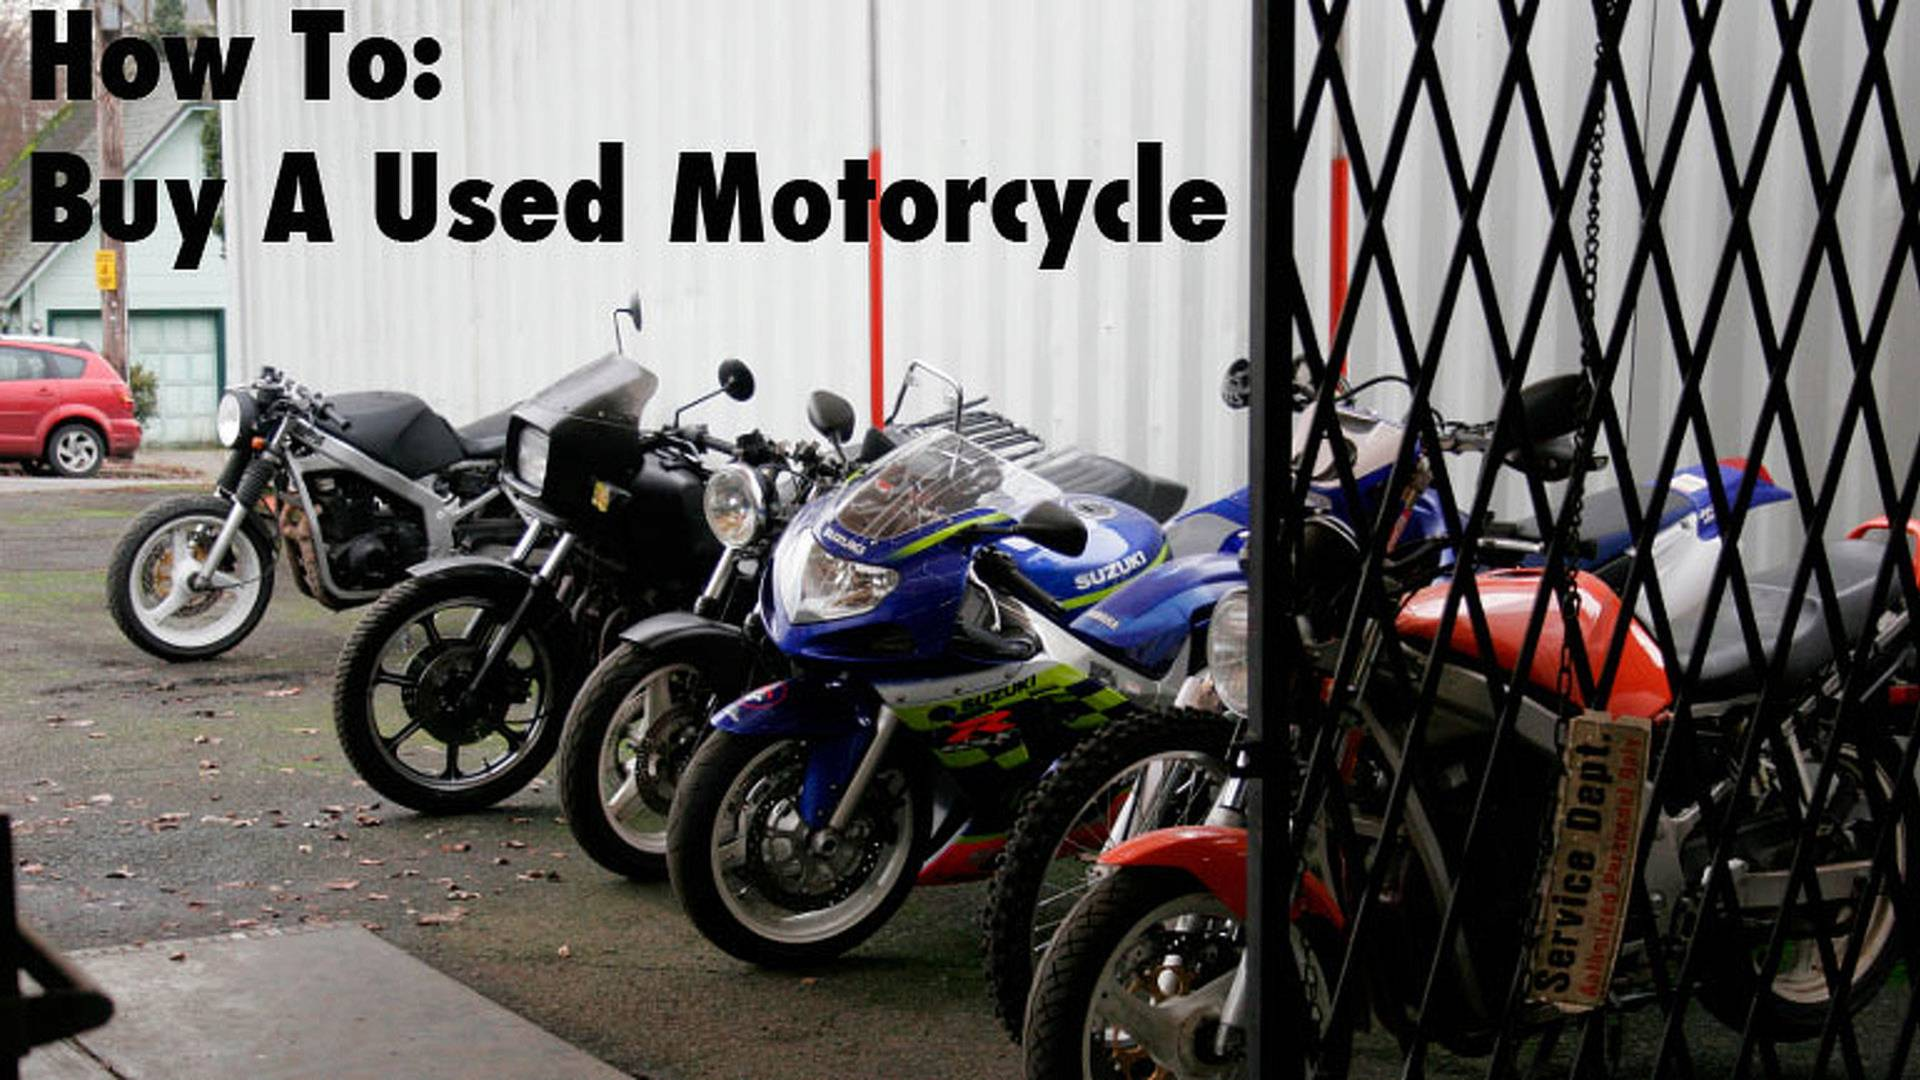 Buy Used Motorcycles >> How To Buy A Used Motorcycle Like A Pro